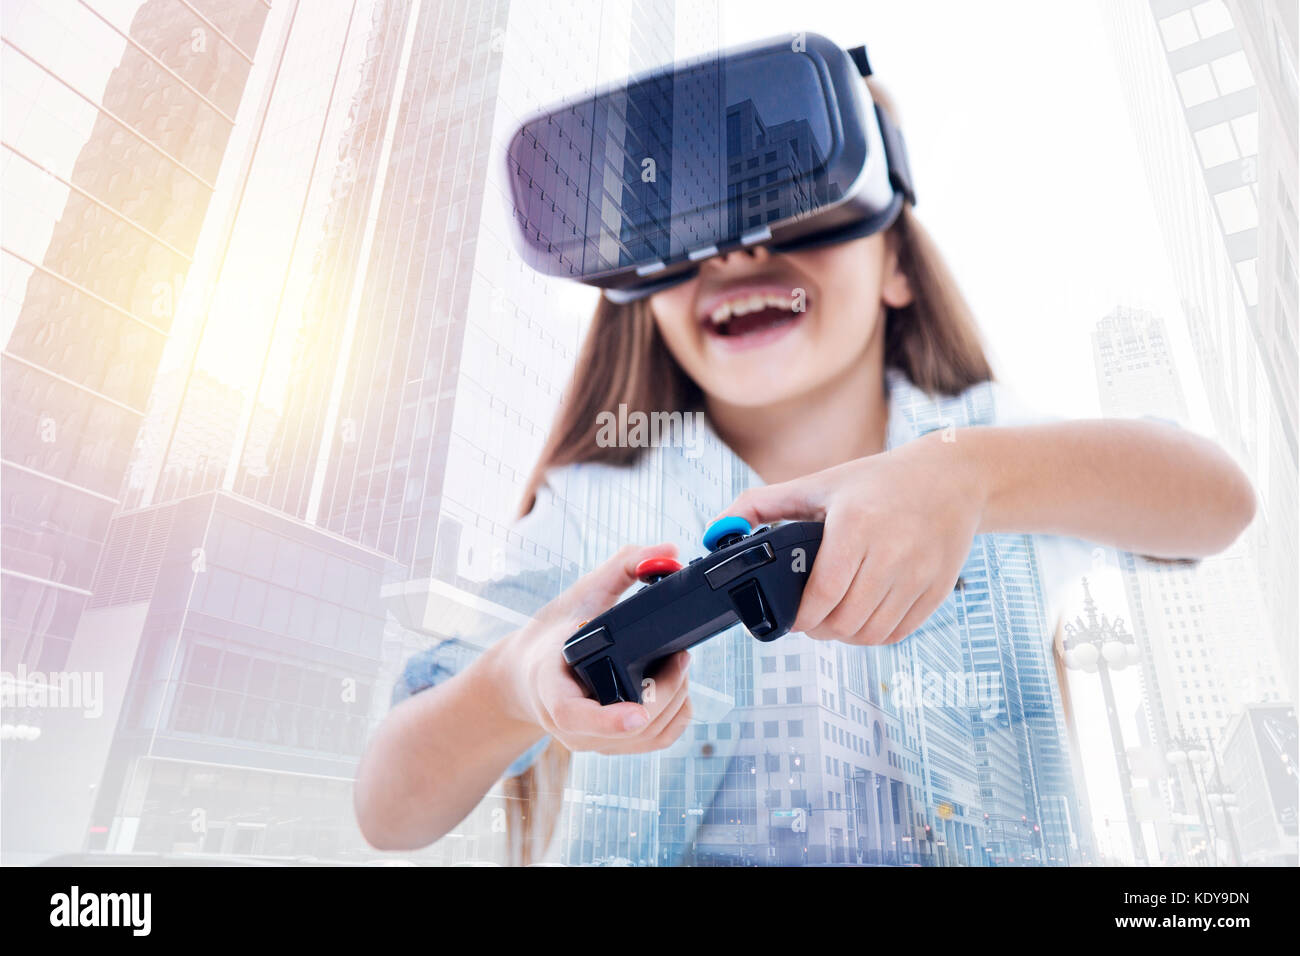 Happy girl in VR headset using video game controller - Stock Image